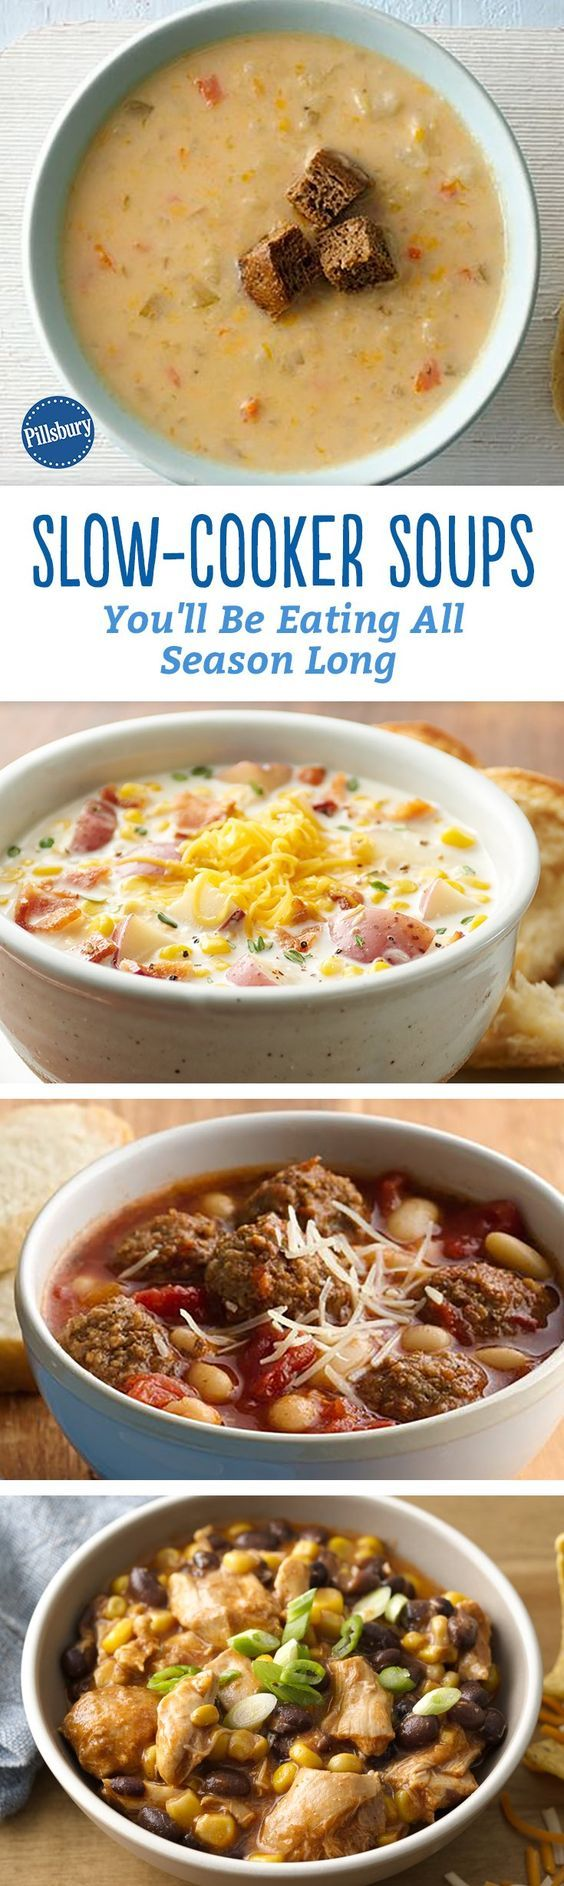 Slow-Cooker Soups Youll Be Eating All Season Long